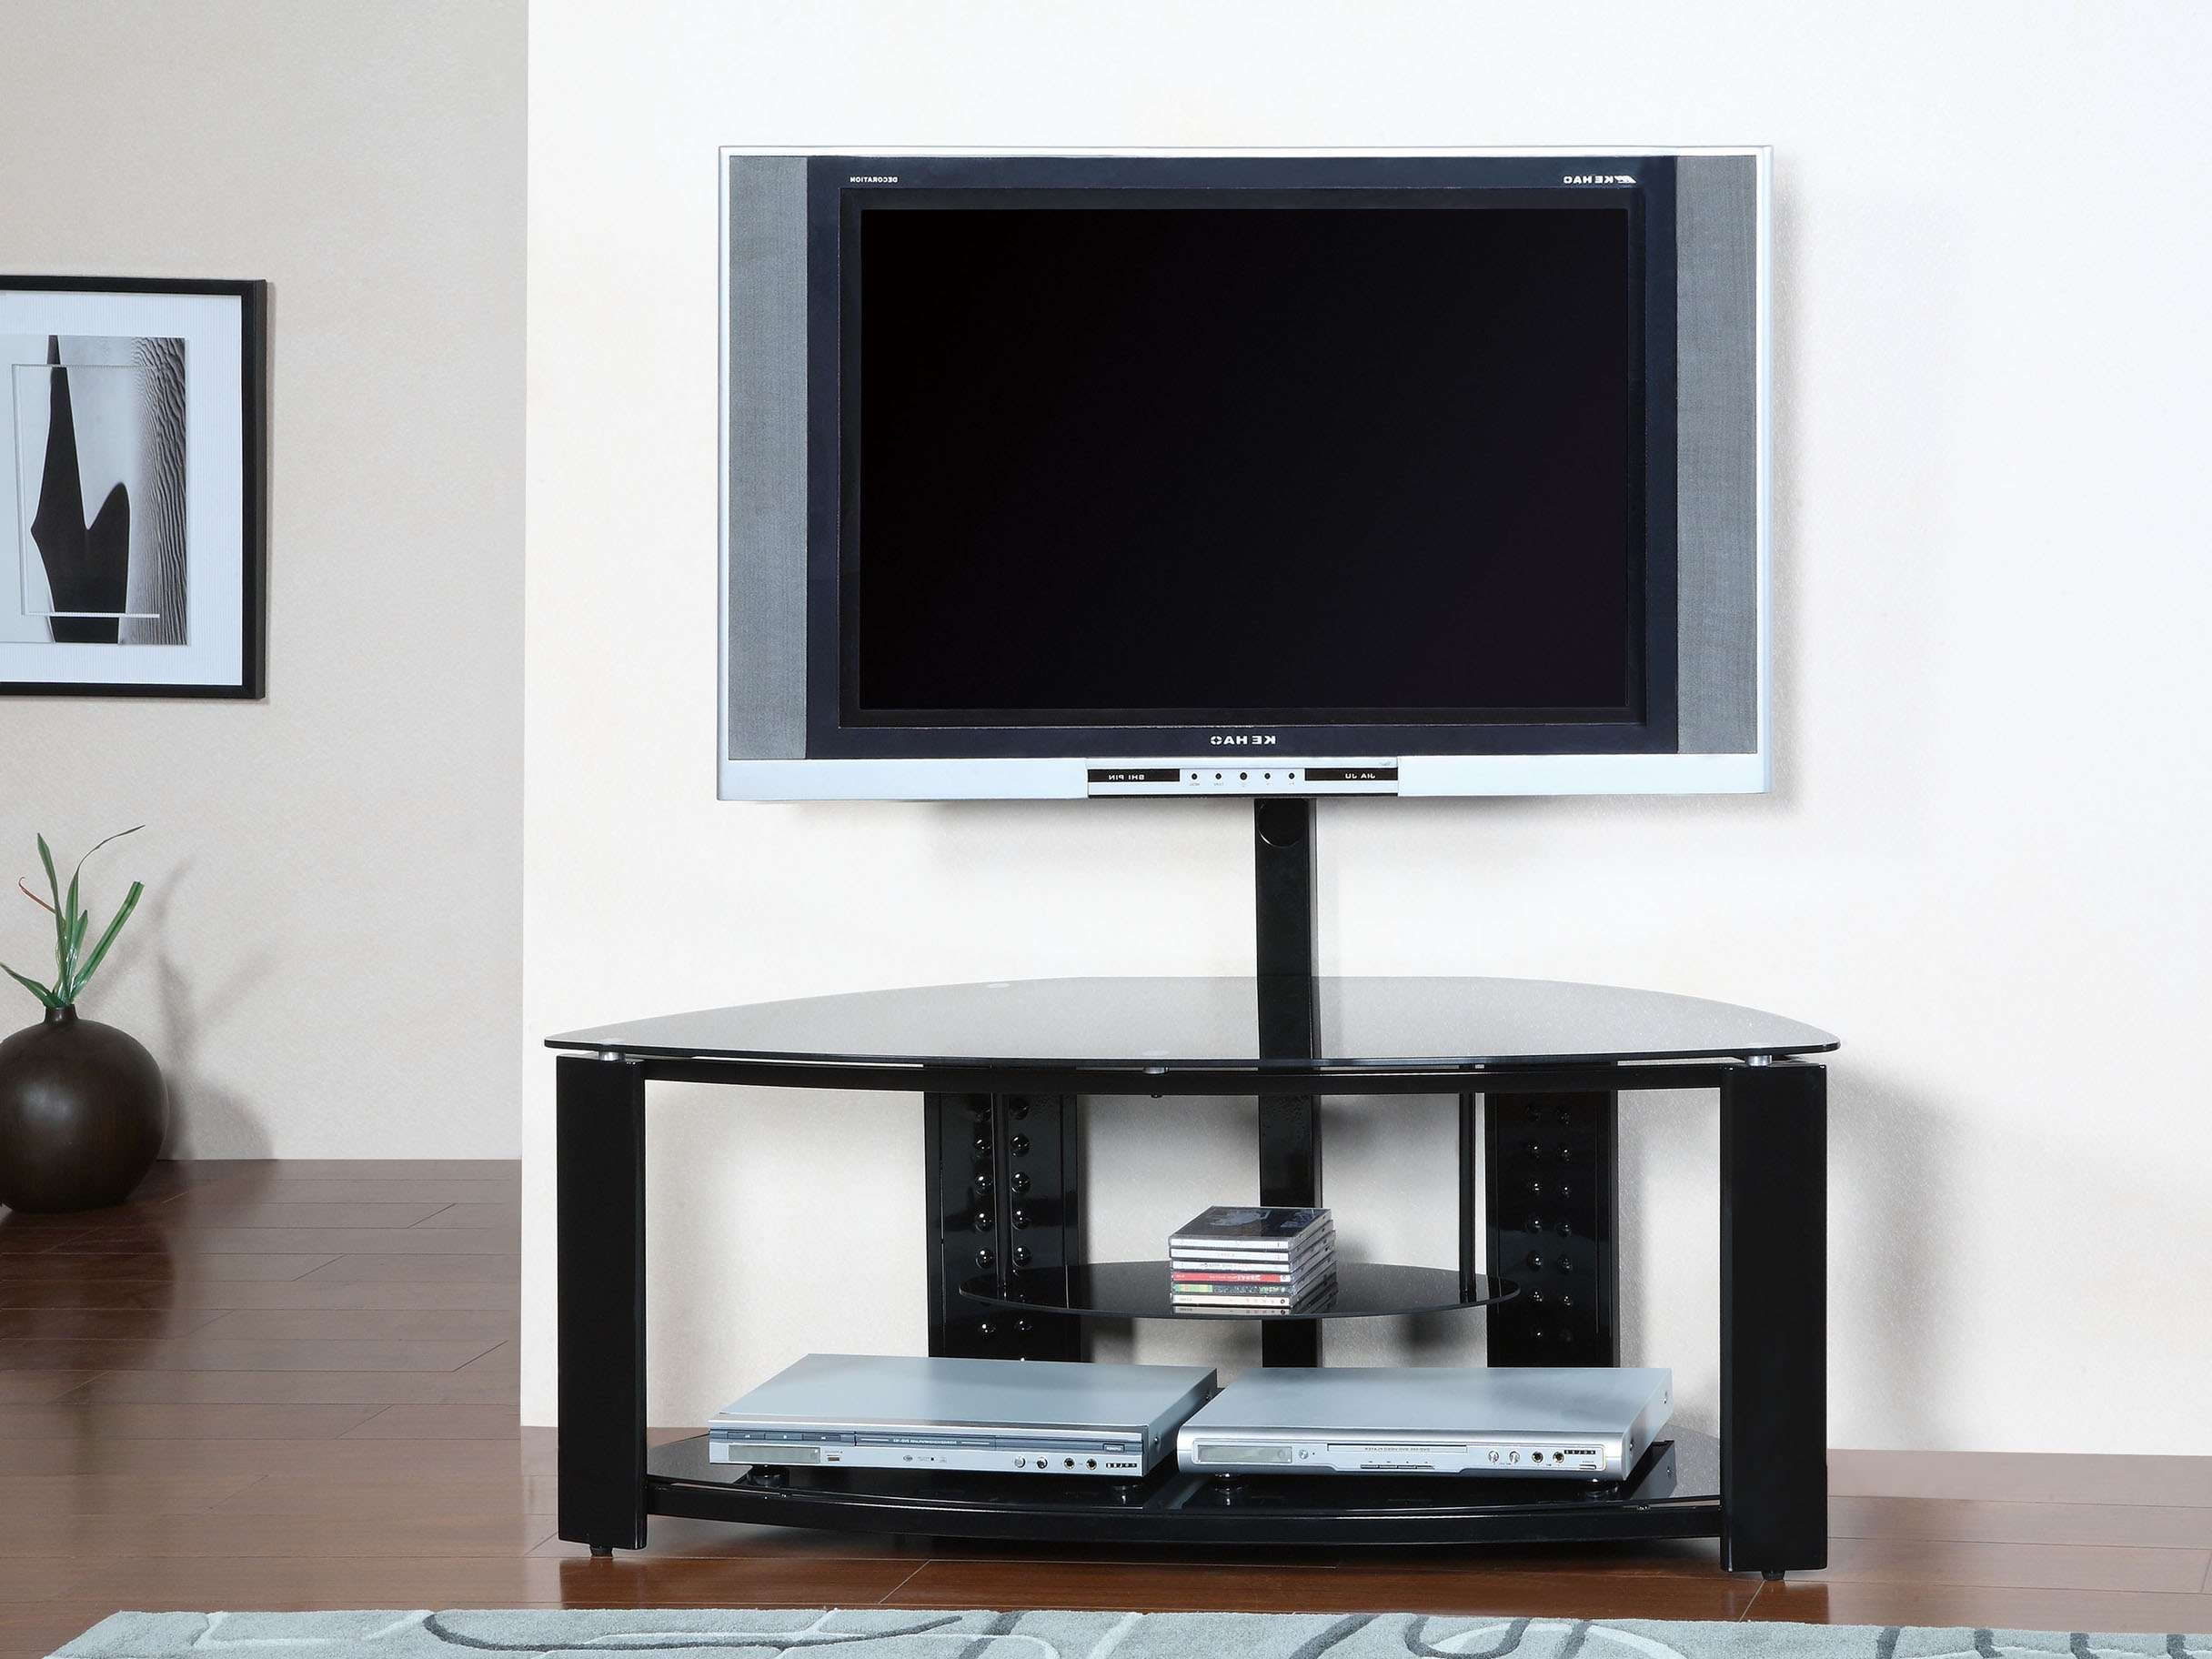 Modern Open Shelf Media Cabinet With Mounted Flat Screen Of Tall Within Open Shelf Tv Stands (View 8 of 15)